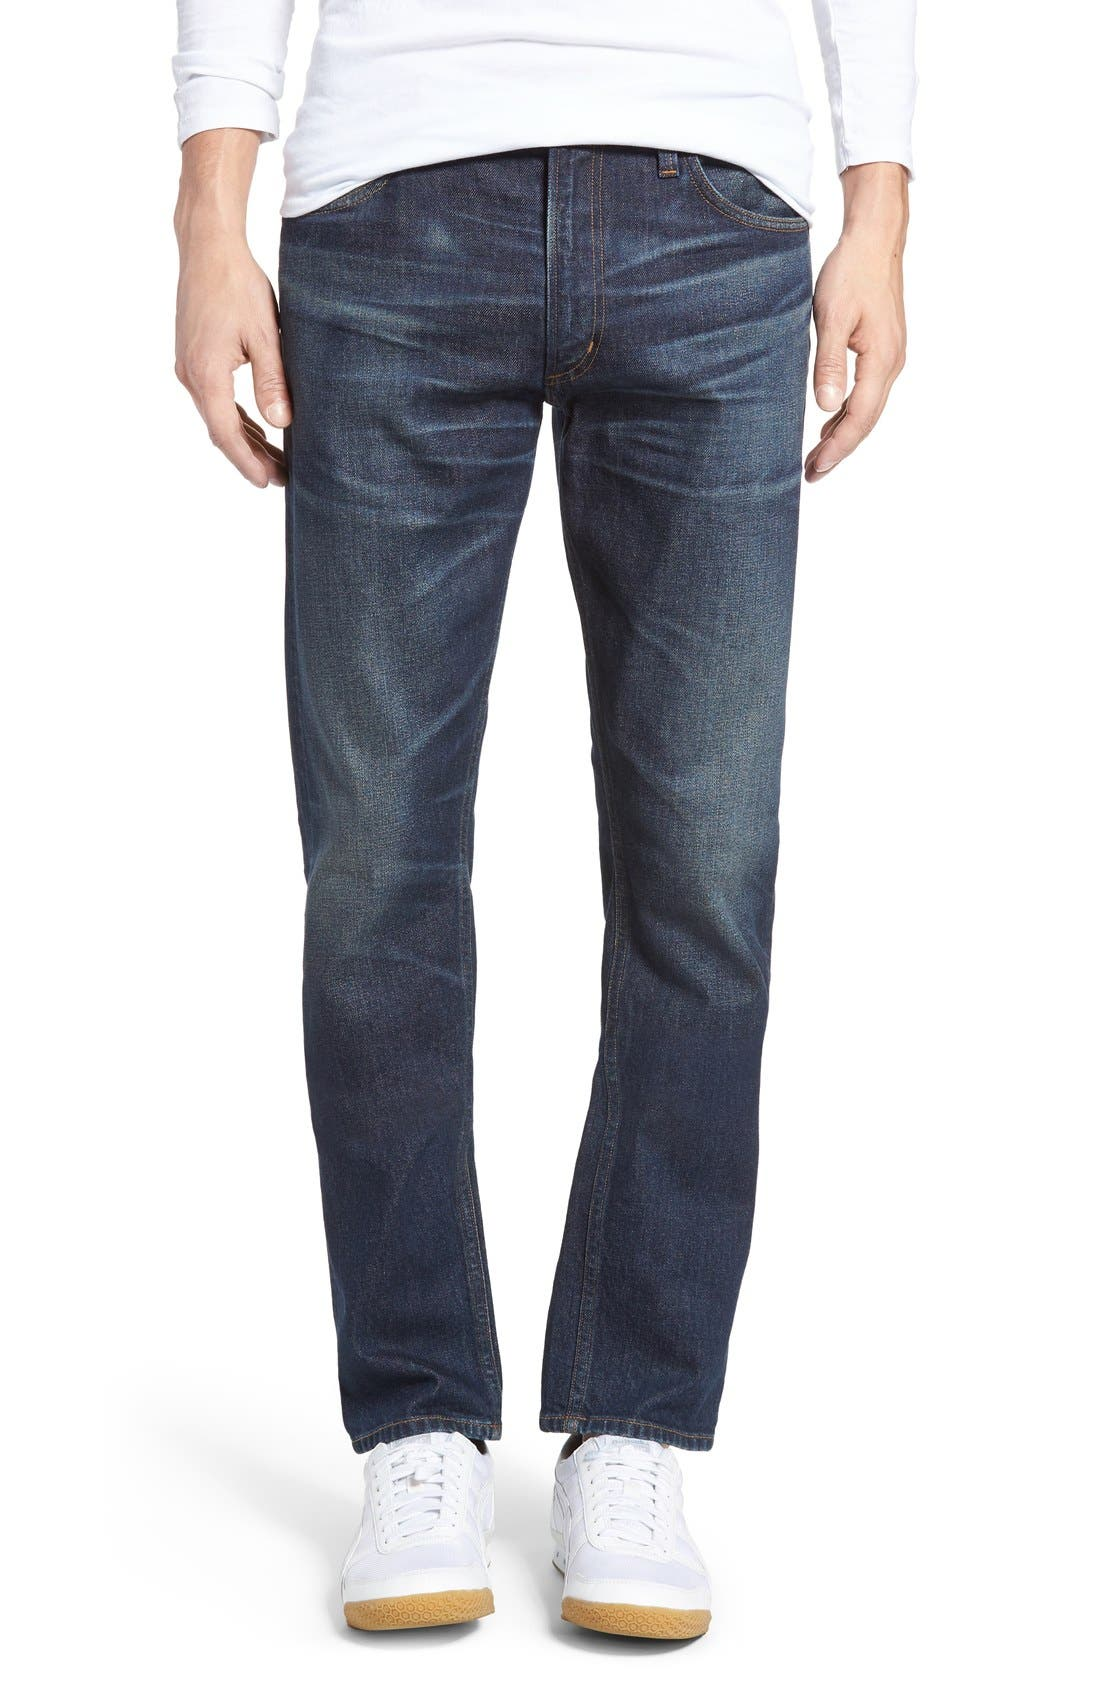 Bowery Slim Fit Jeans,                             Main thumbnail 1, color,                             Hesperia